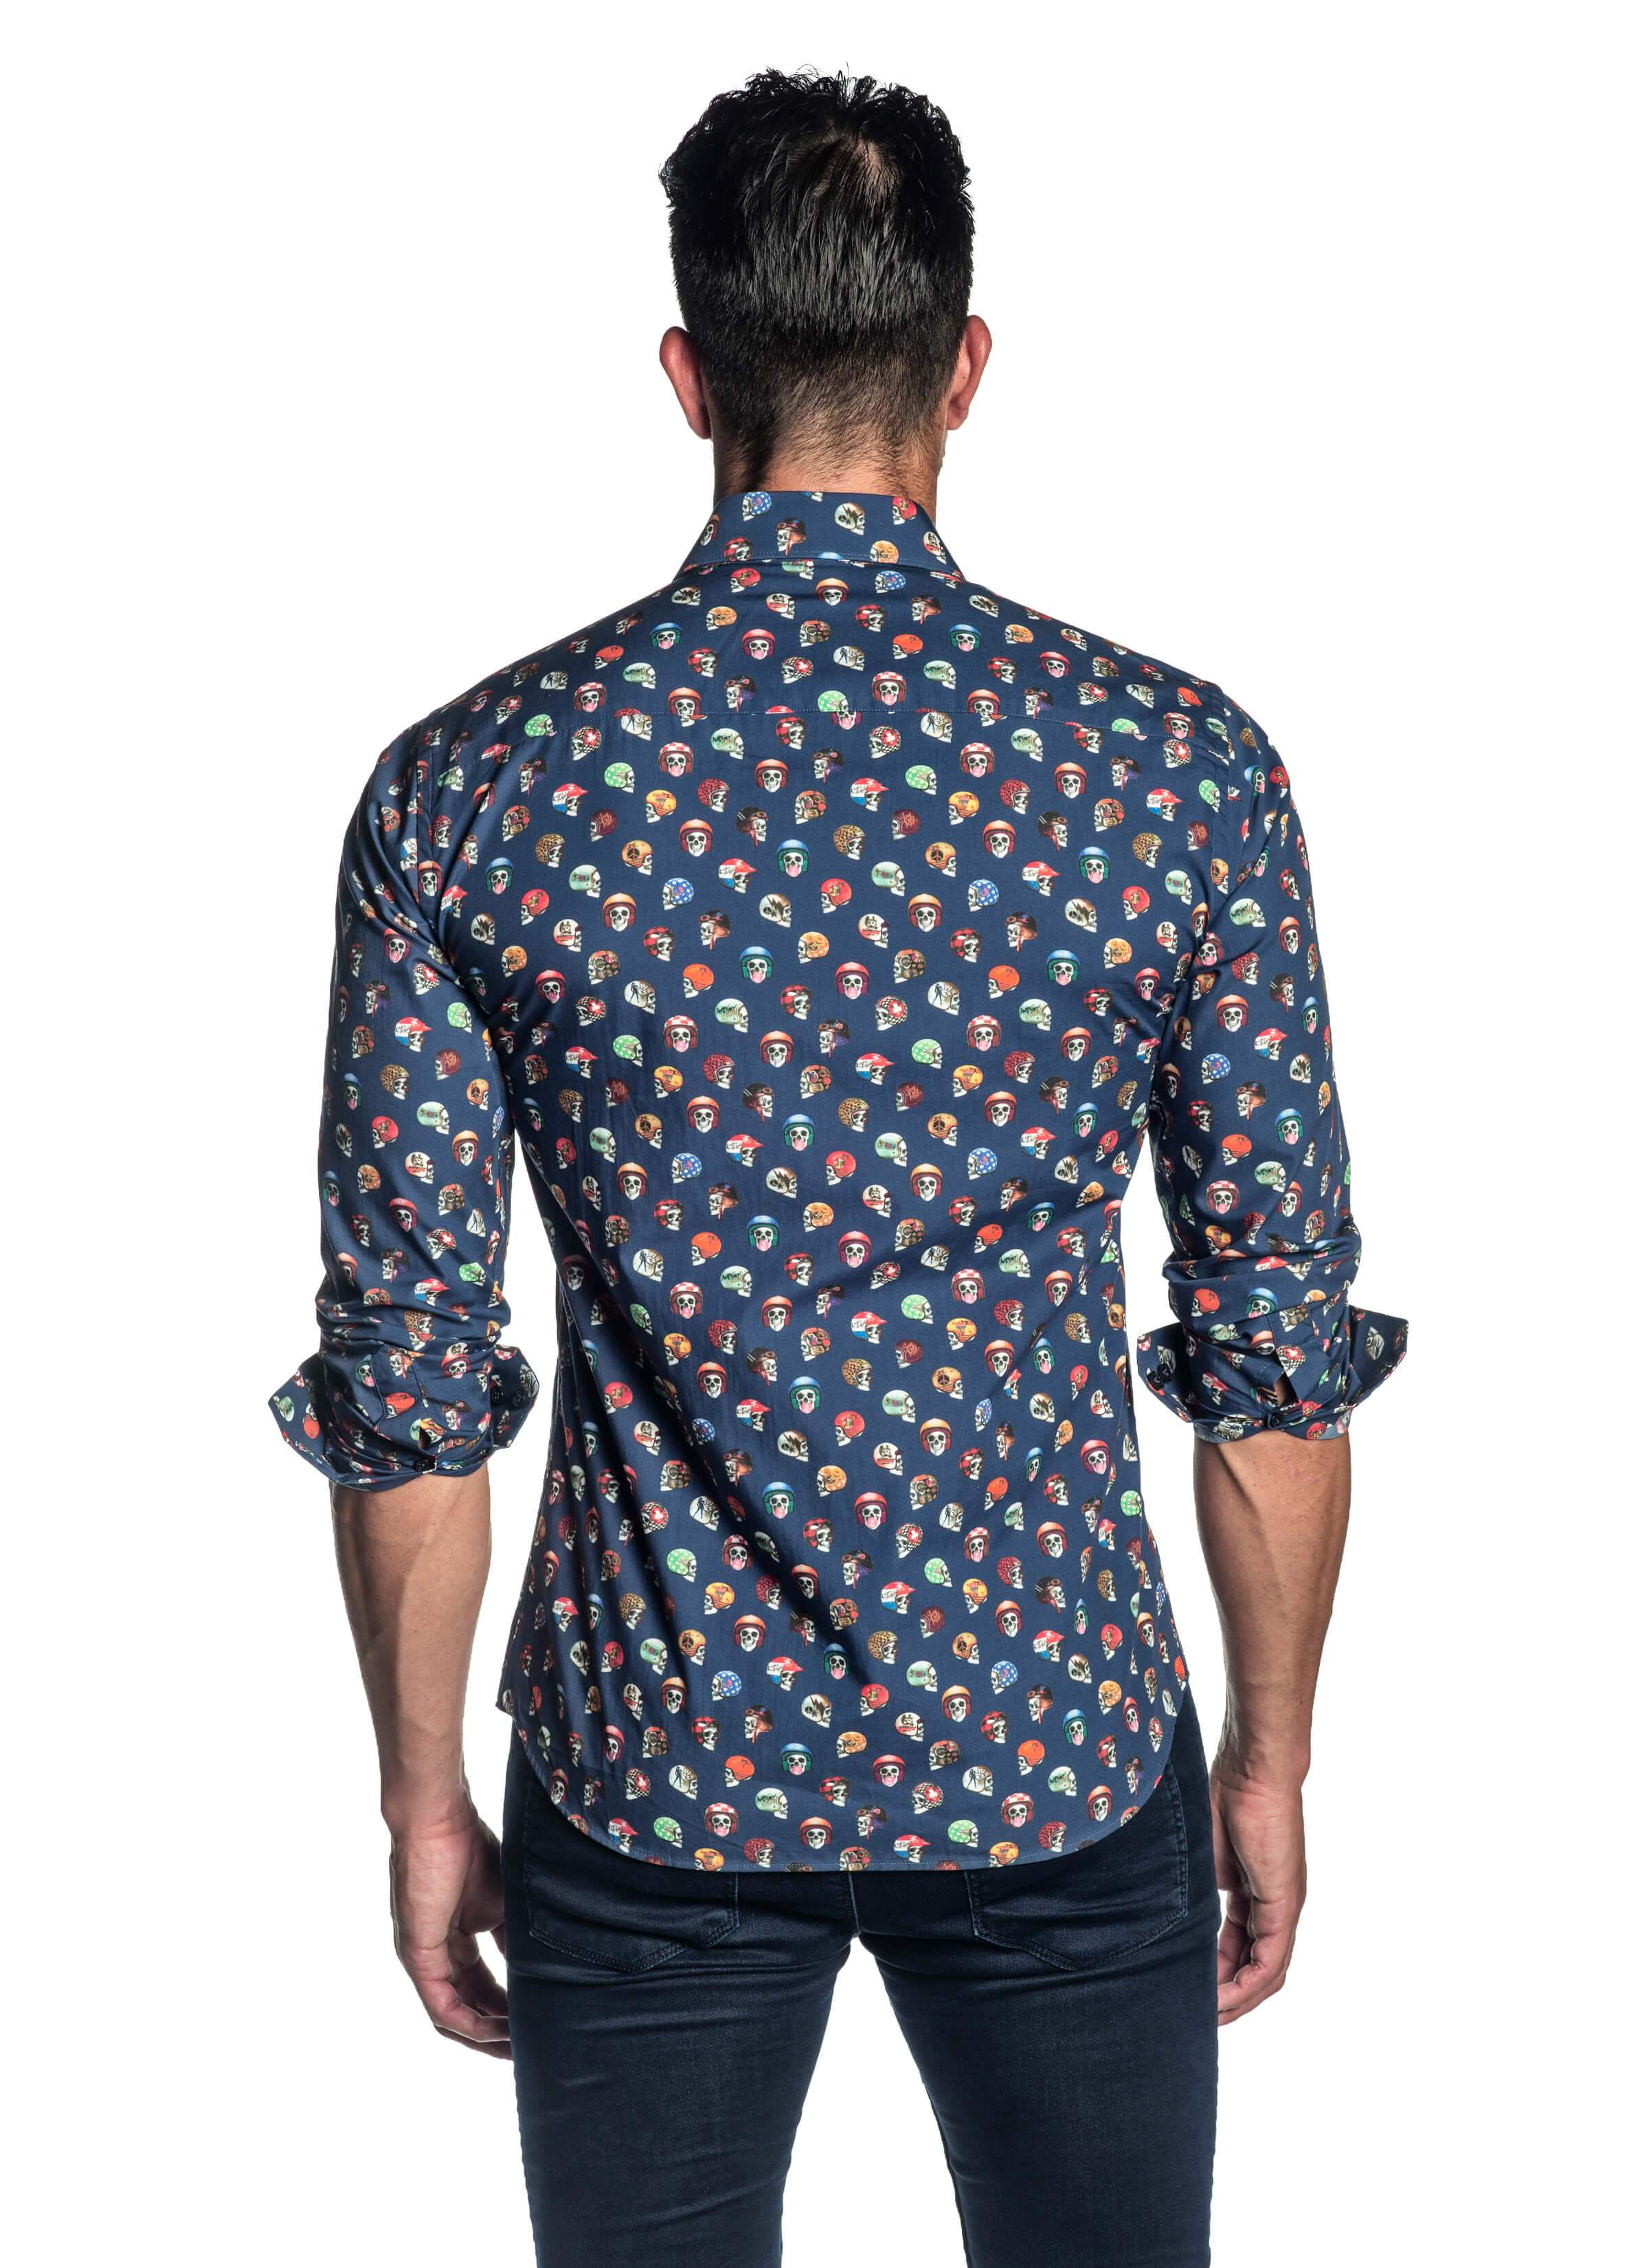 Navy Skulls Printed Shirt for Men T-2082 - Back - Jared Lang